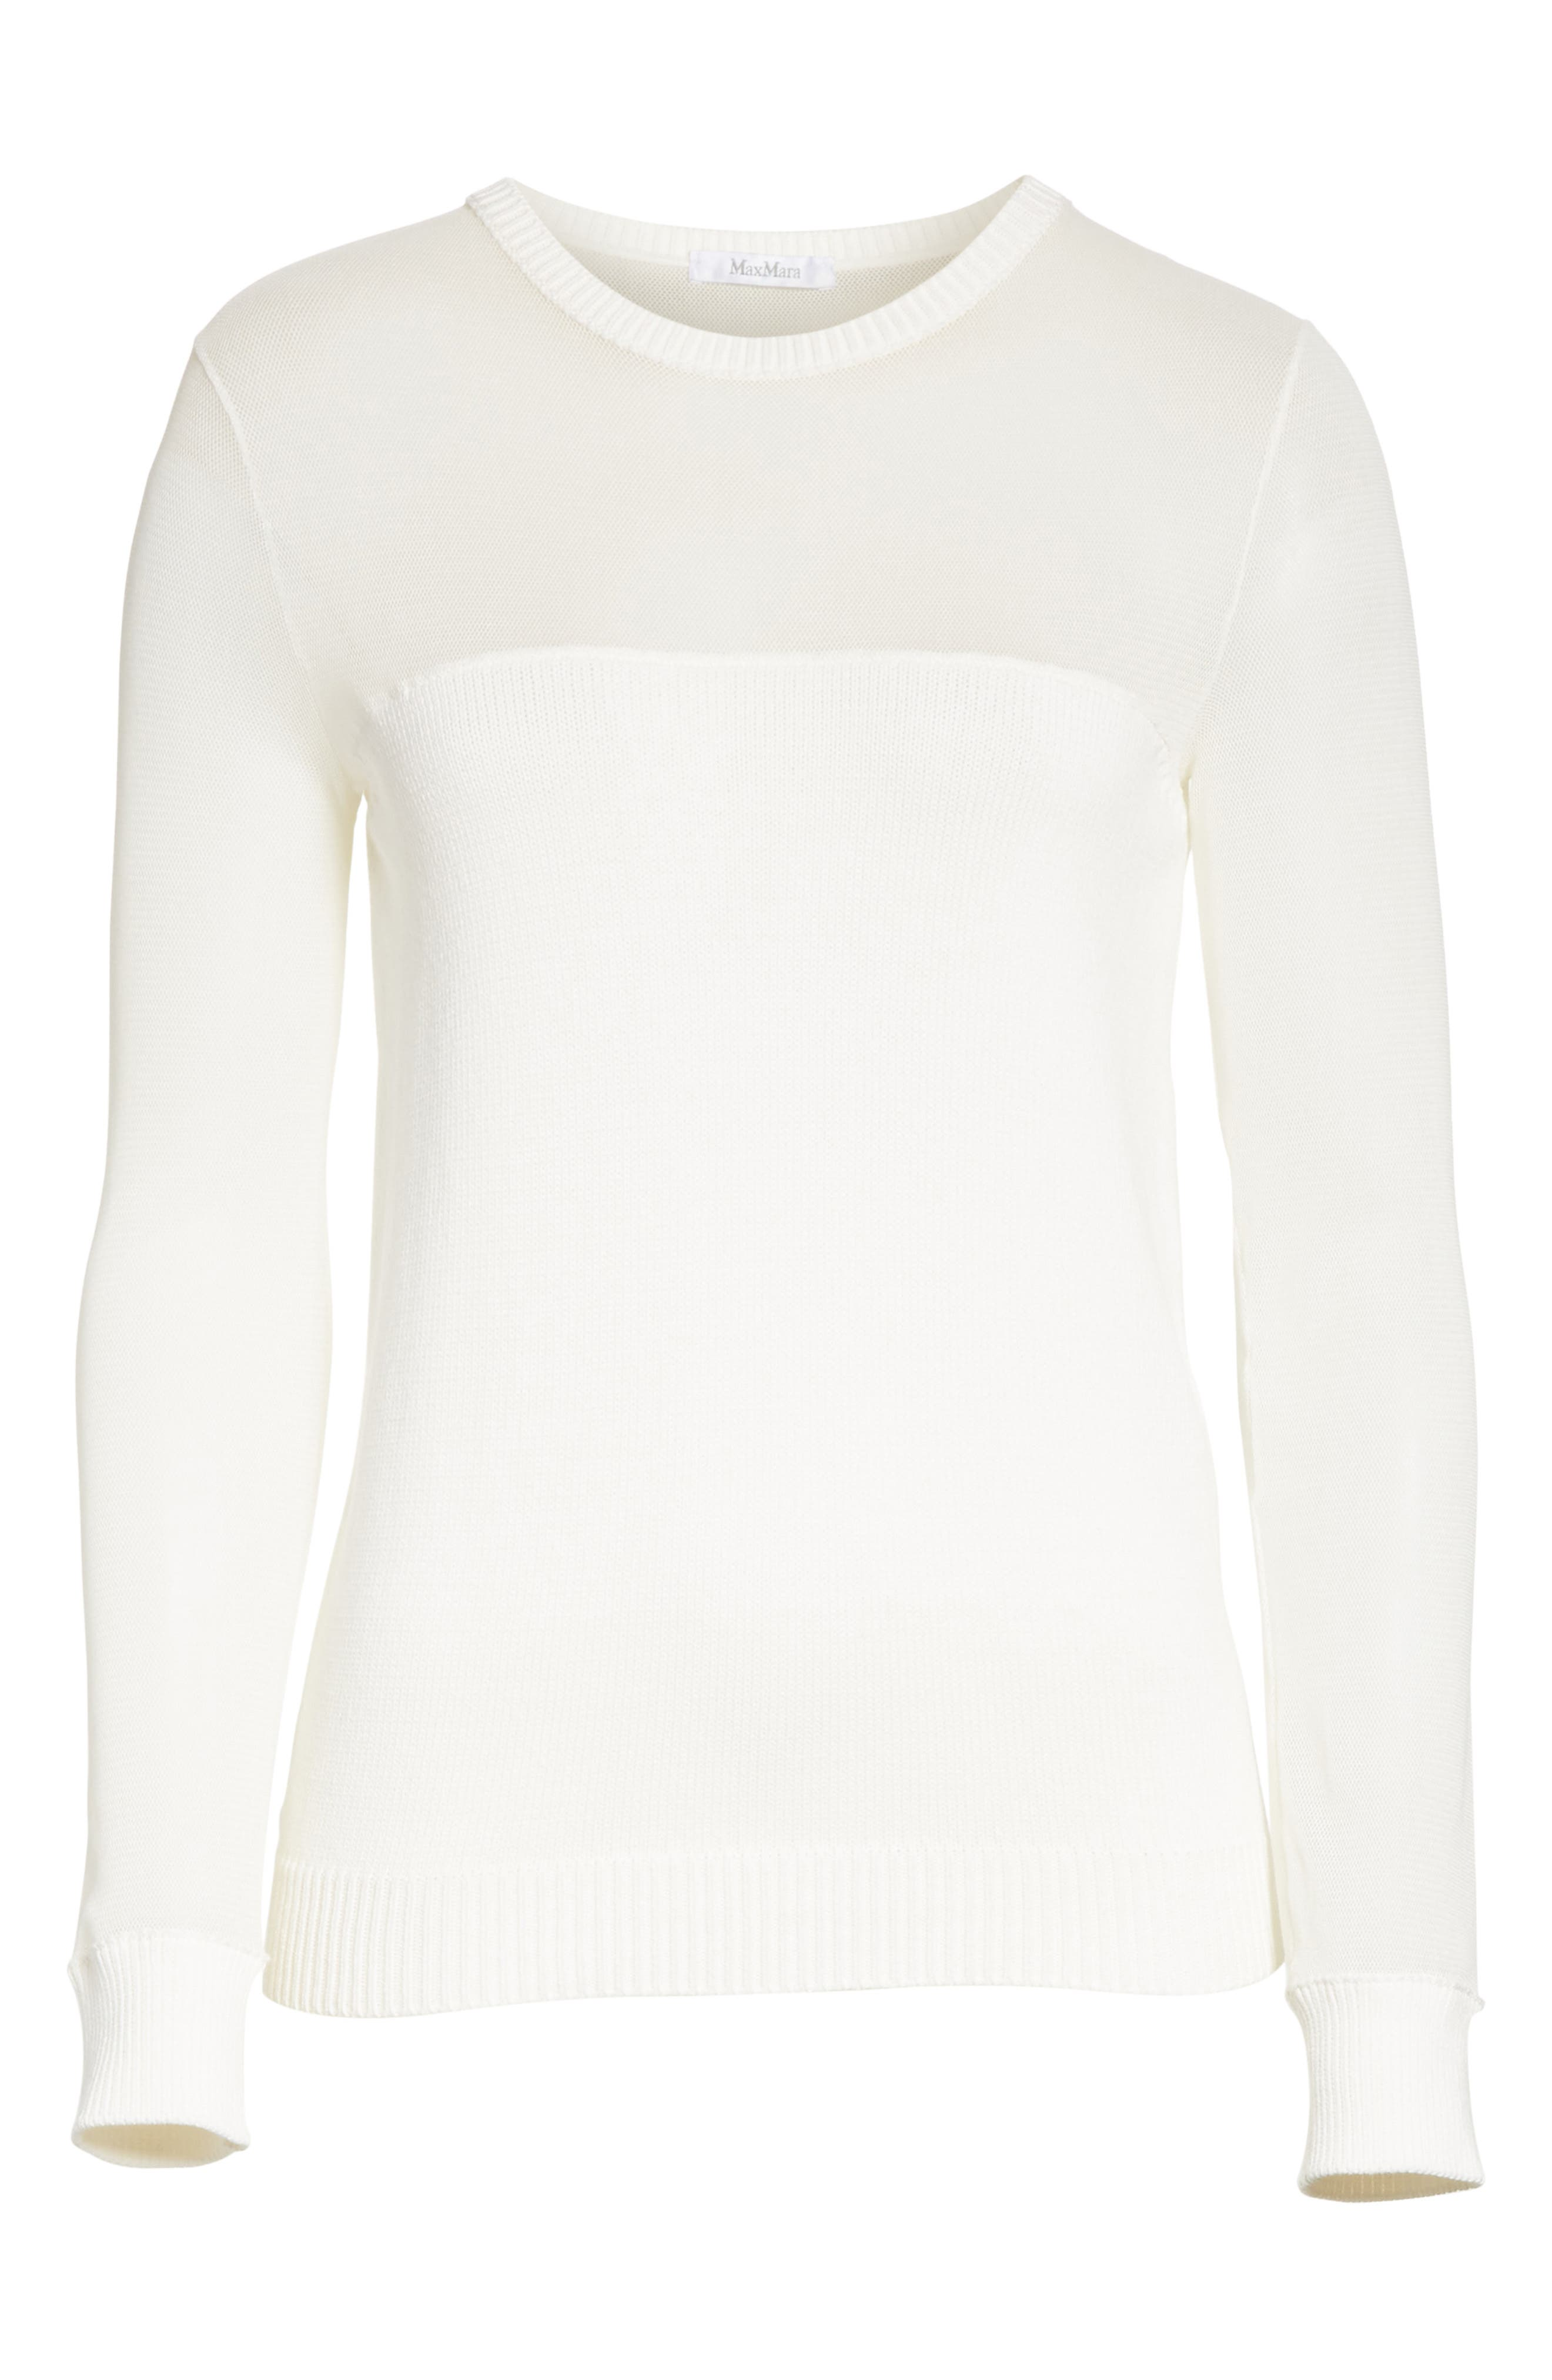 Cantore Mesh Yoke Sweater,                             Alternate thumbnail 6, color,                             Ivory